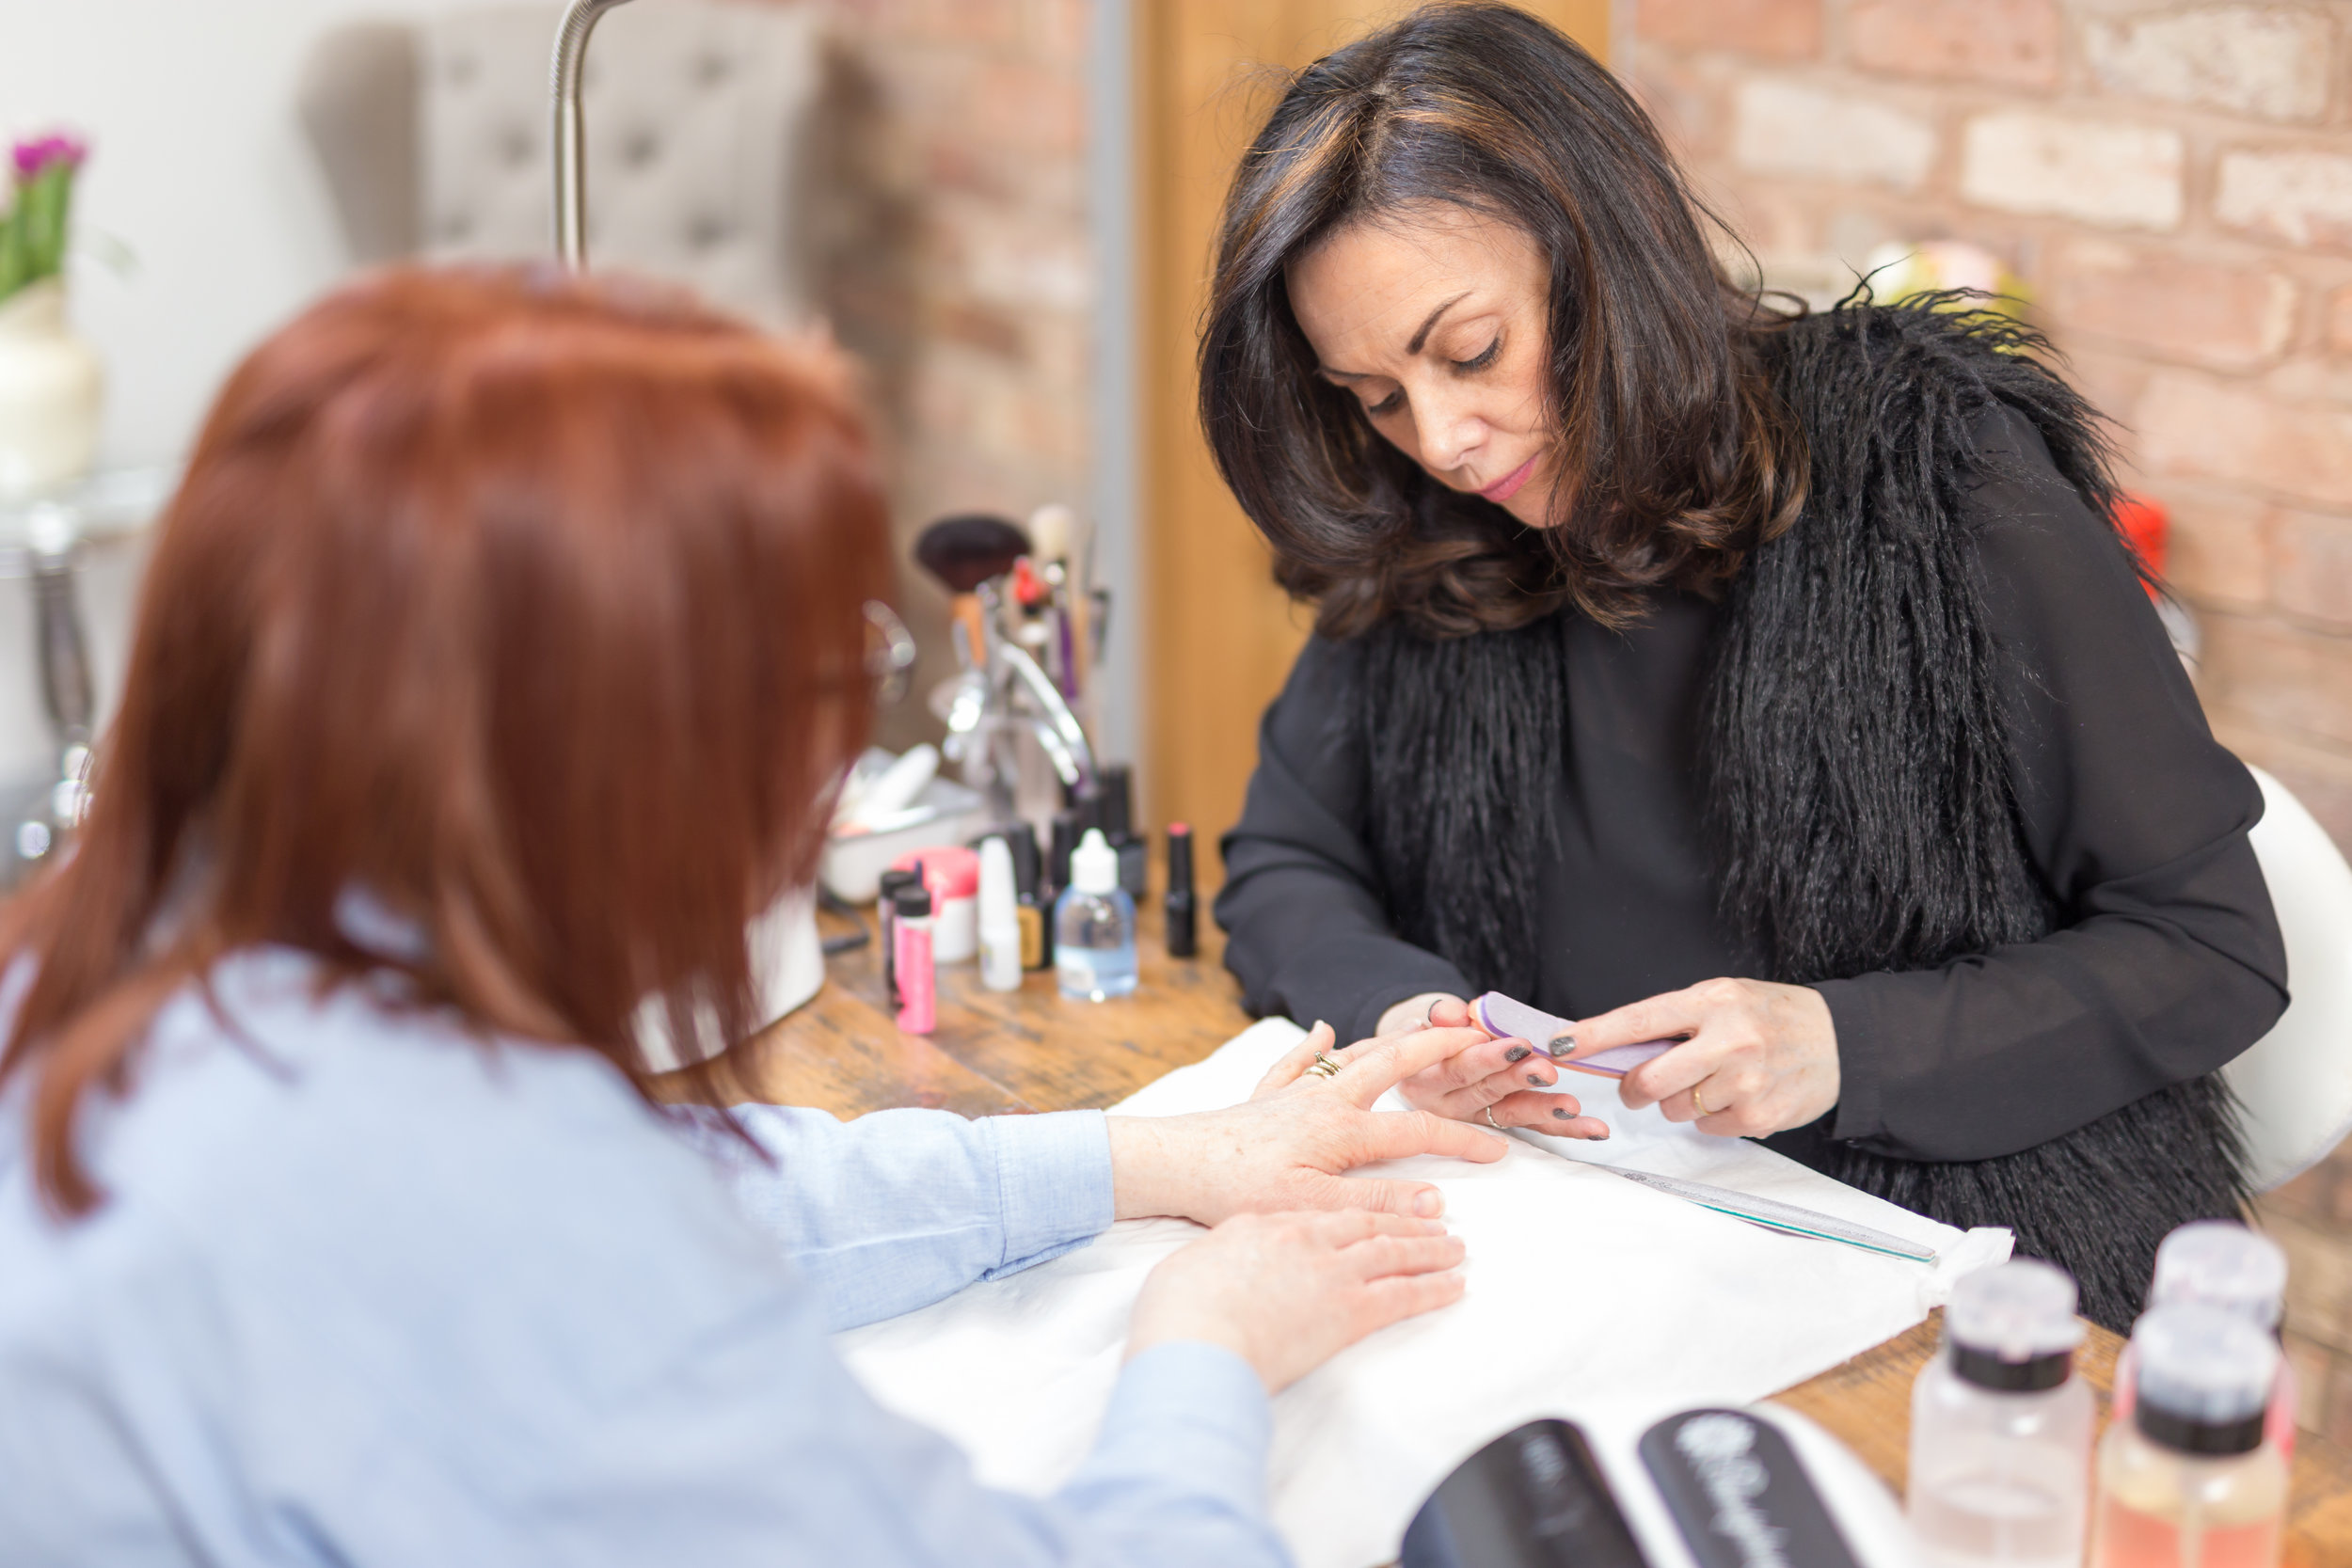 Meet Kim - The lady behind the salon is Kim Dorman.Kim has assembled a group of talented stylists, technicians and beauticians in order to create Bay Hair and Beauty.She has worked in the beauty industry since 2003 and has been a qualified educator in Nails and Beauty for 13 years.